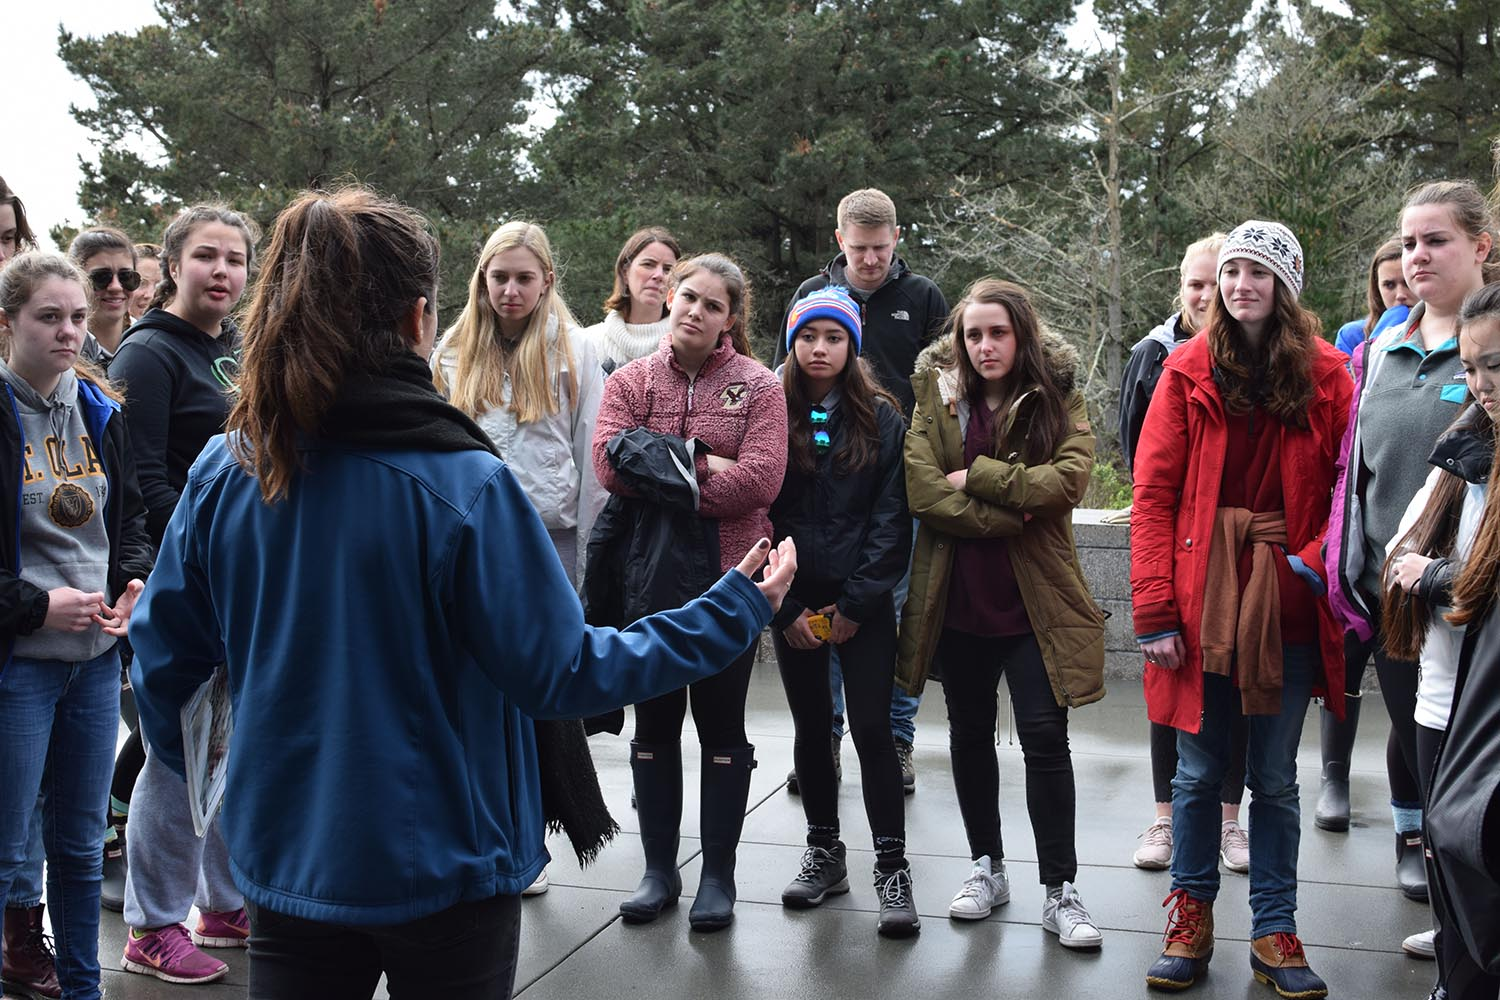 Seniors on retreat listen to an introduction about the Marine Mammal Center in Sausalito before going to observe the animals. The class stayed up past 11 p.m. for a circle sharing activity later that night.